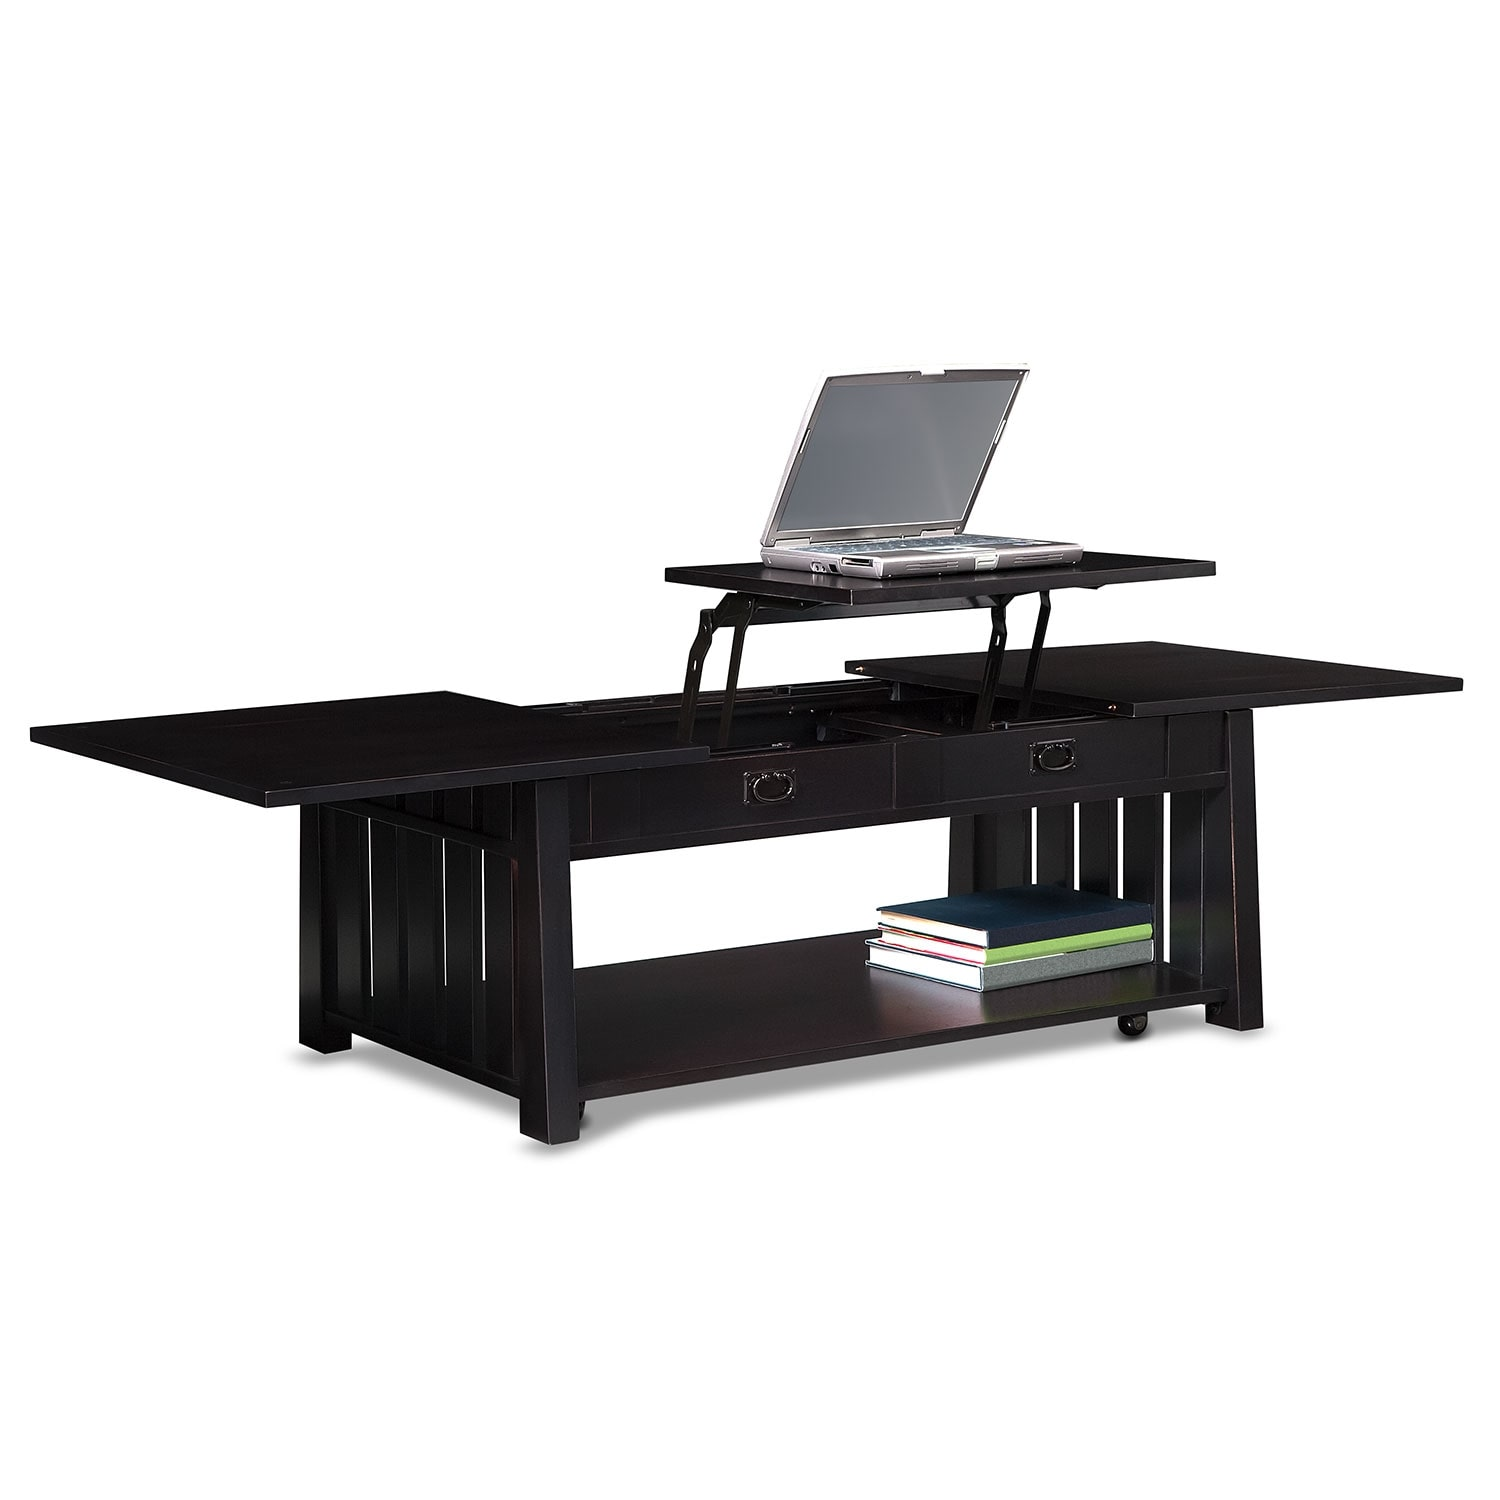 Tribute lift top cocktail table black value city furniture Black lift top coffee tables